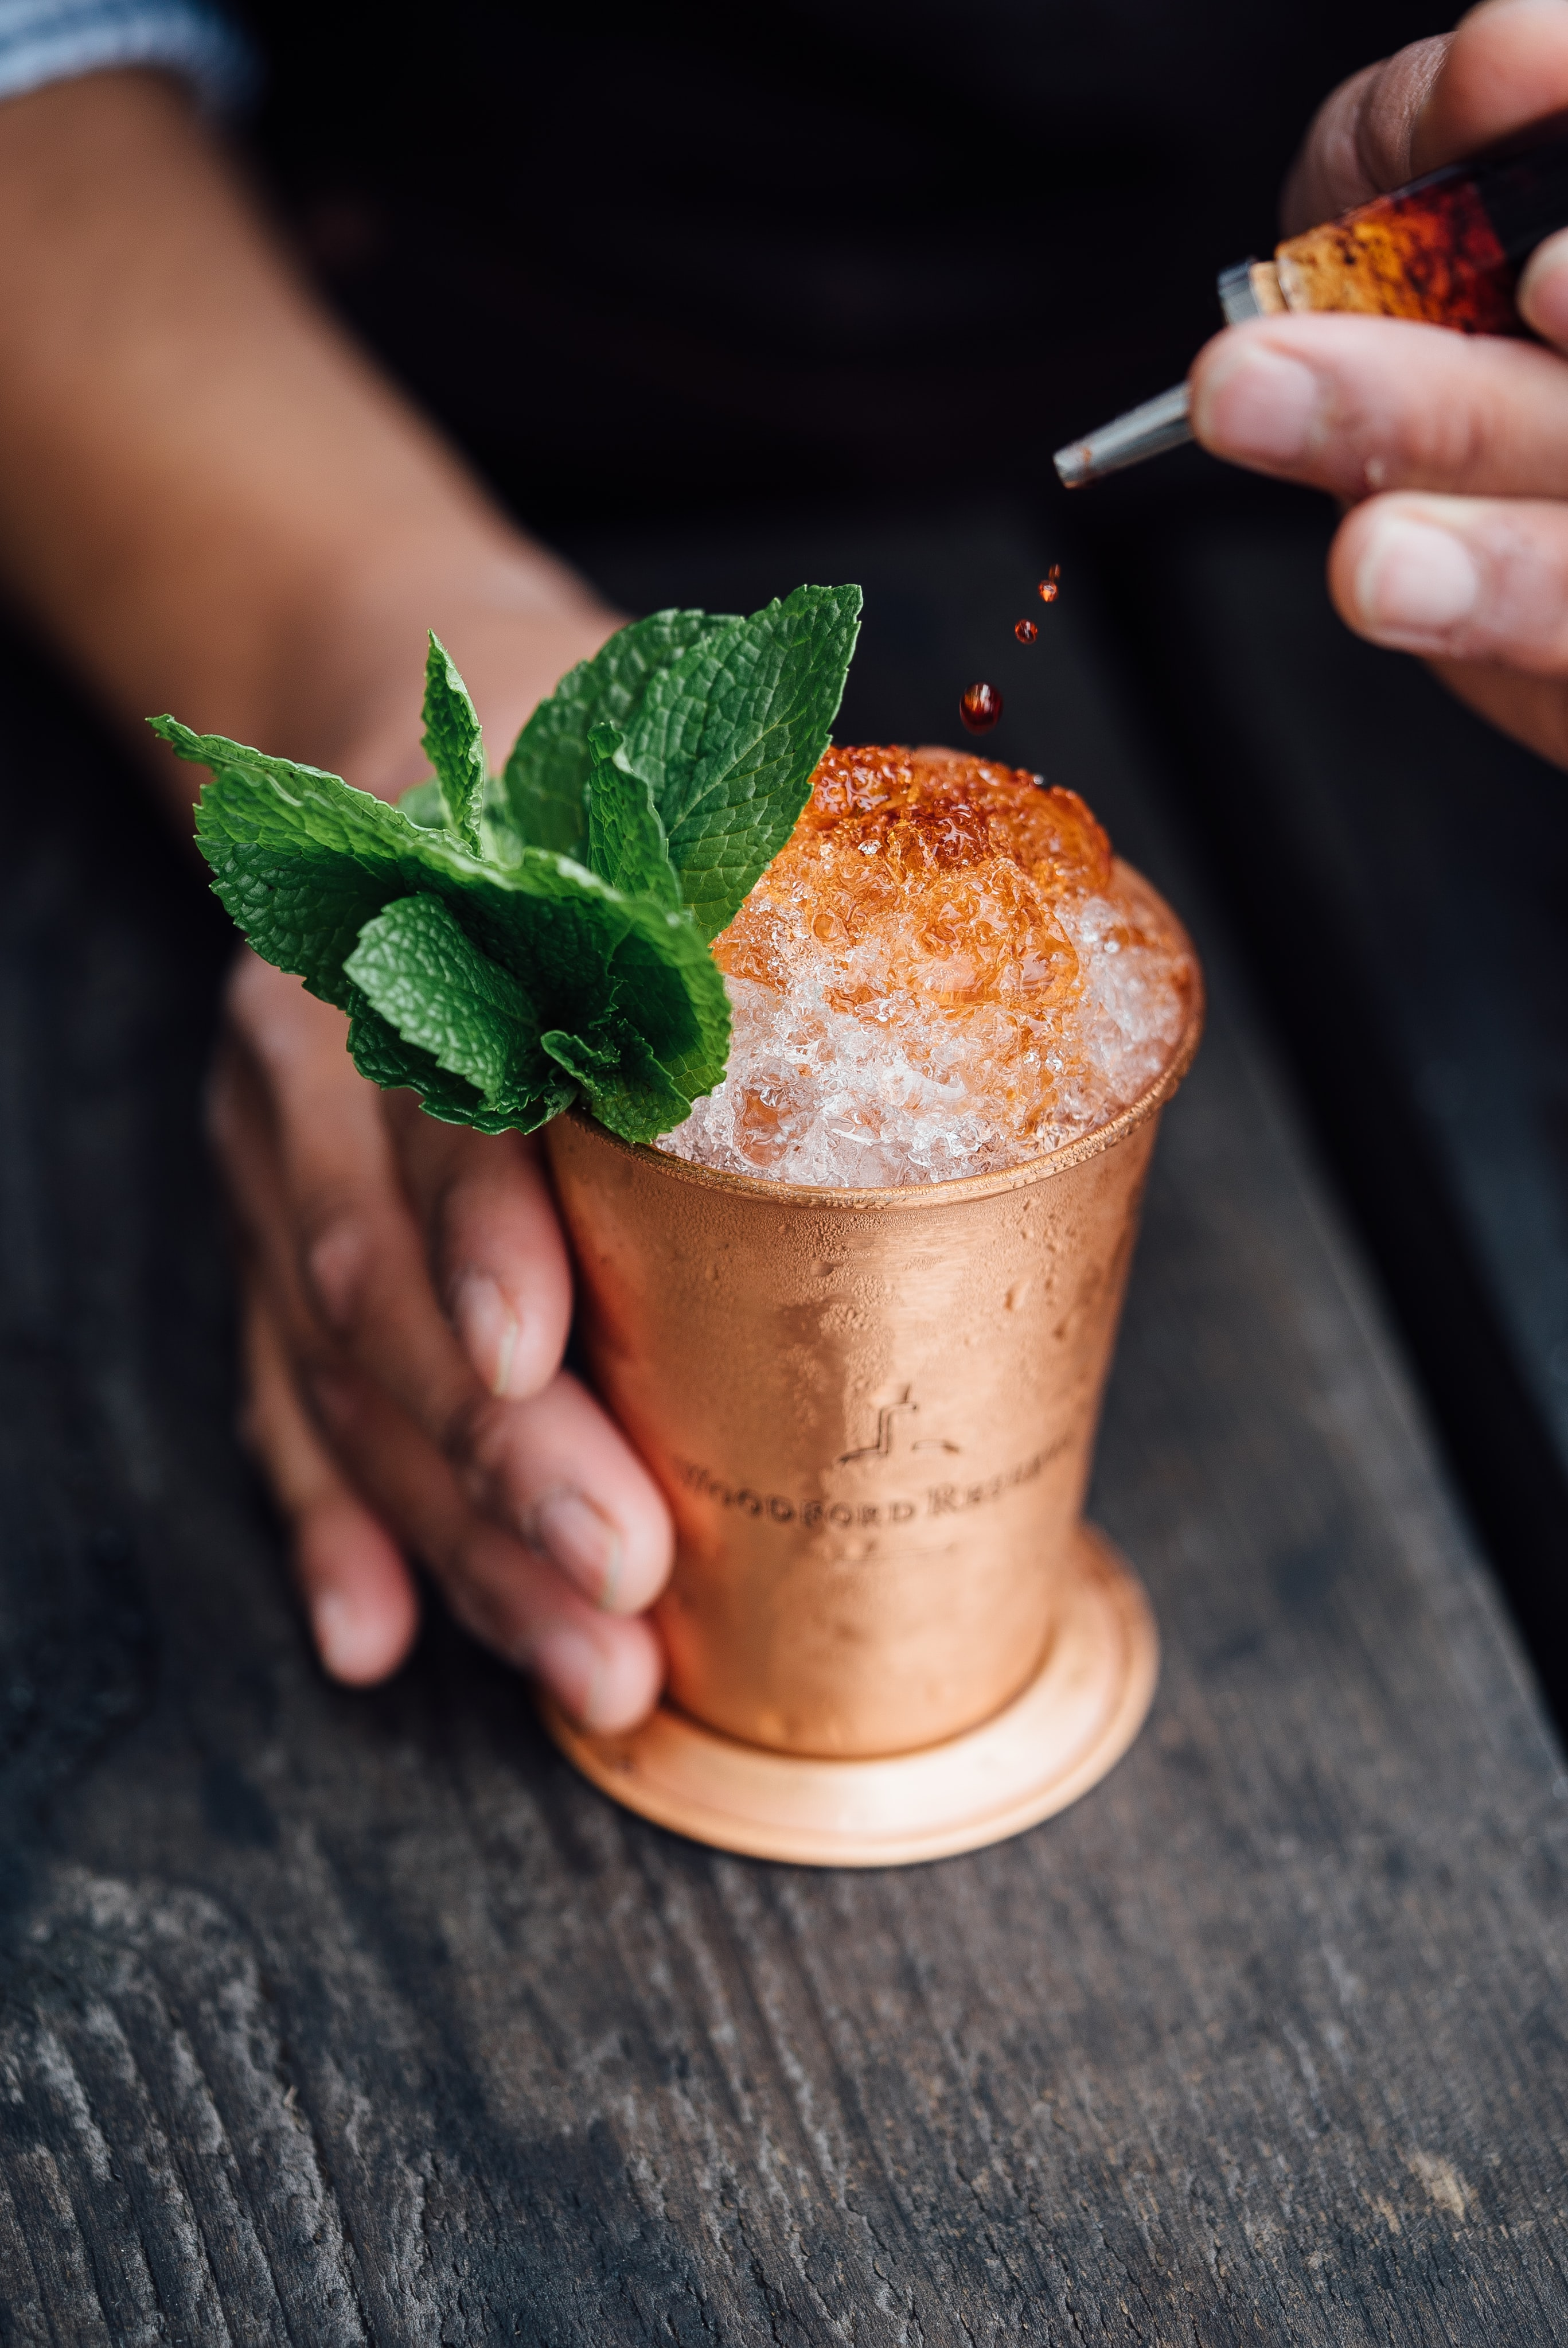 Gallery Image 3 - Moscow mule